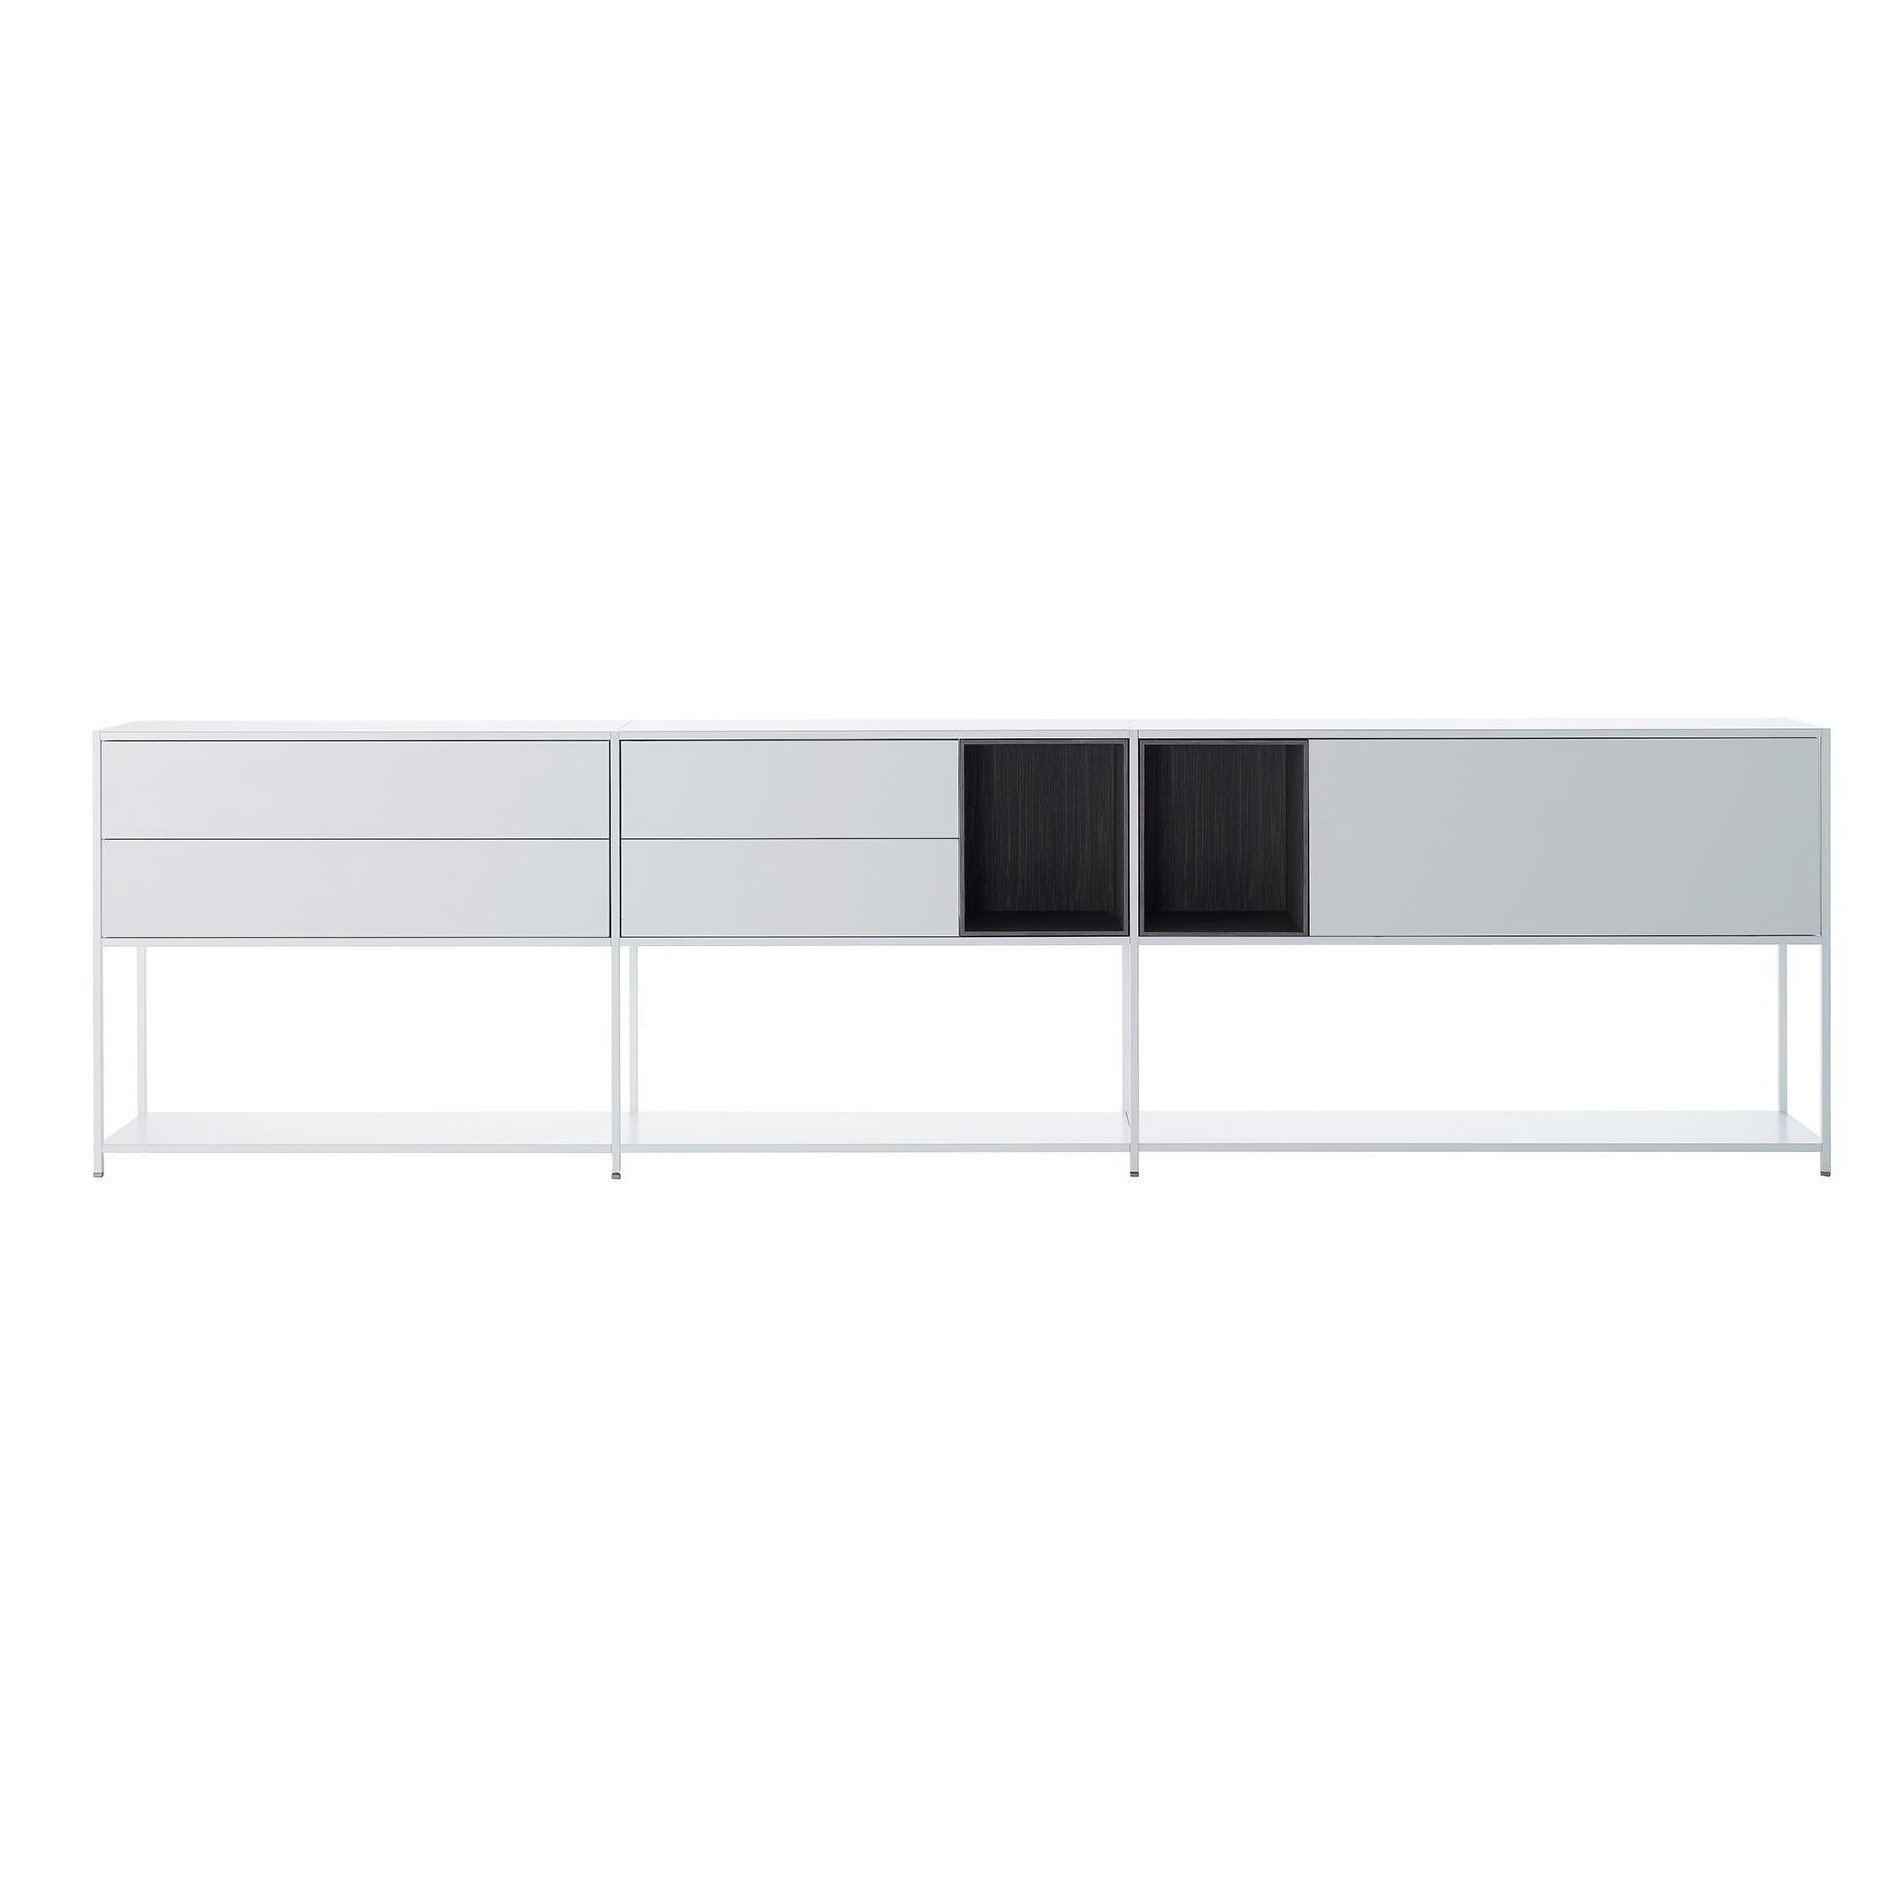 mdf italia minima 3 0 sideboard 306x33x79cm ambientedirect. Black Bedroom Furniture Sets. Home Design Ideas